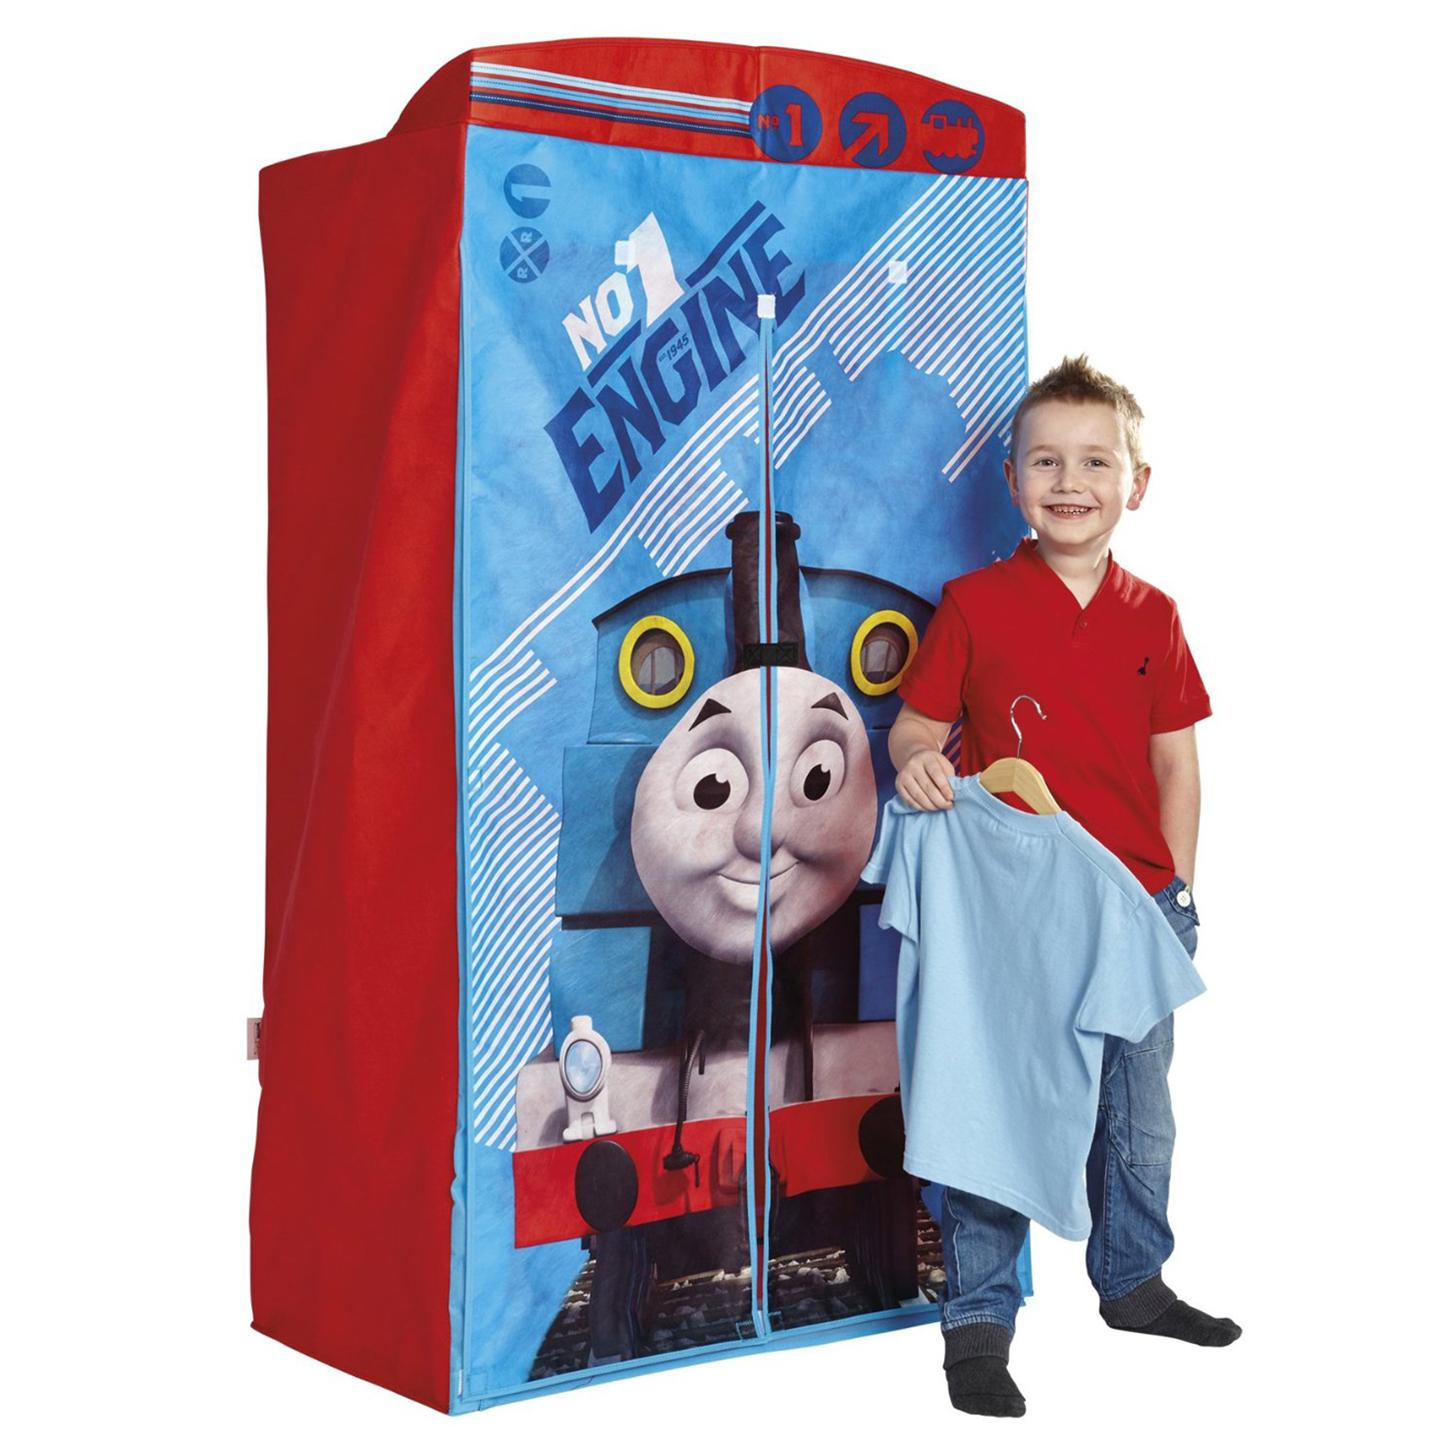 Good Thomas And Friends Furniture #3: Thomas Tank Engine Bedroom Furniture Friends Fabric Wardrobe Official The